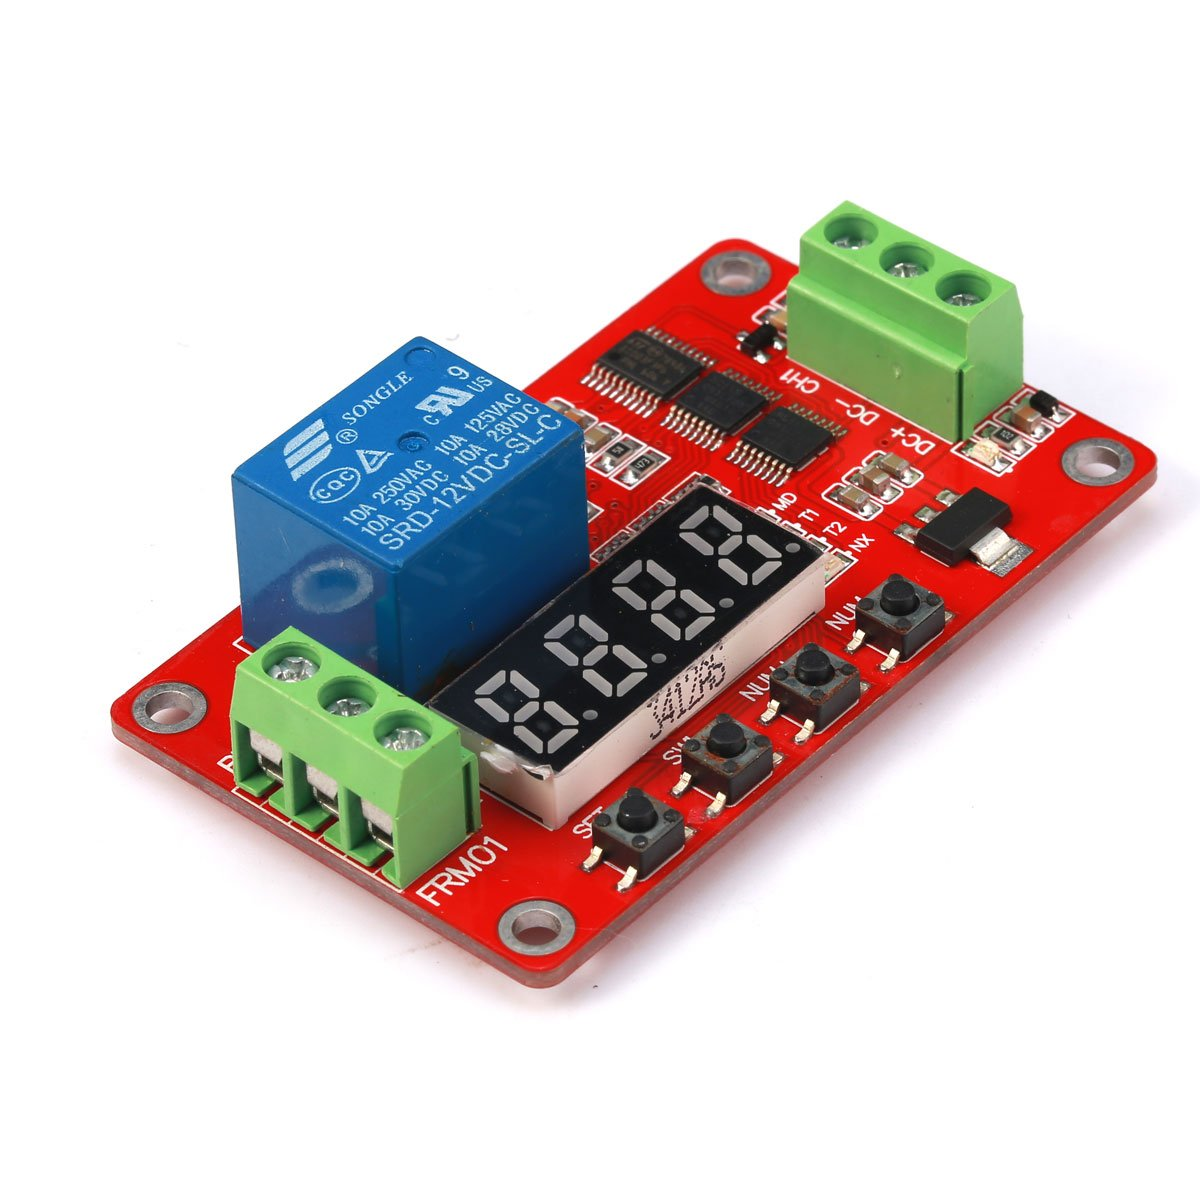 Geri Newer Version 12v Multifunction Relay Cycle Timer Module Two Based Motorcycle Alarm Circuits Programmable With Customized Settings Increased To 18 Modes